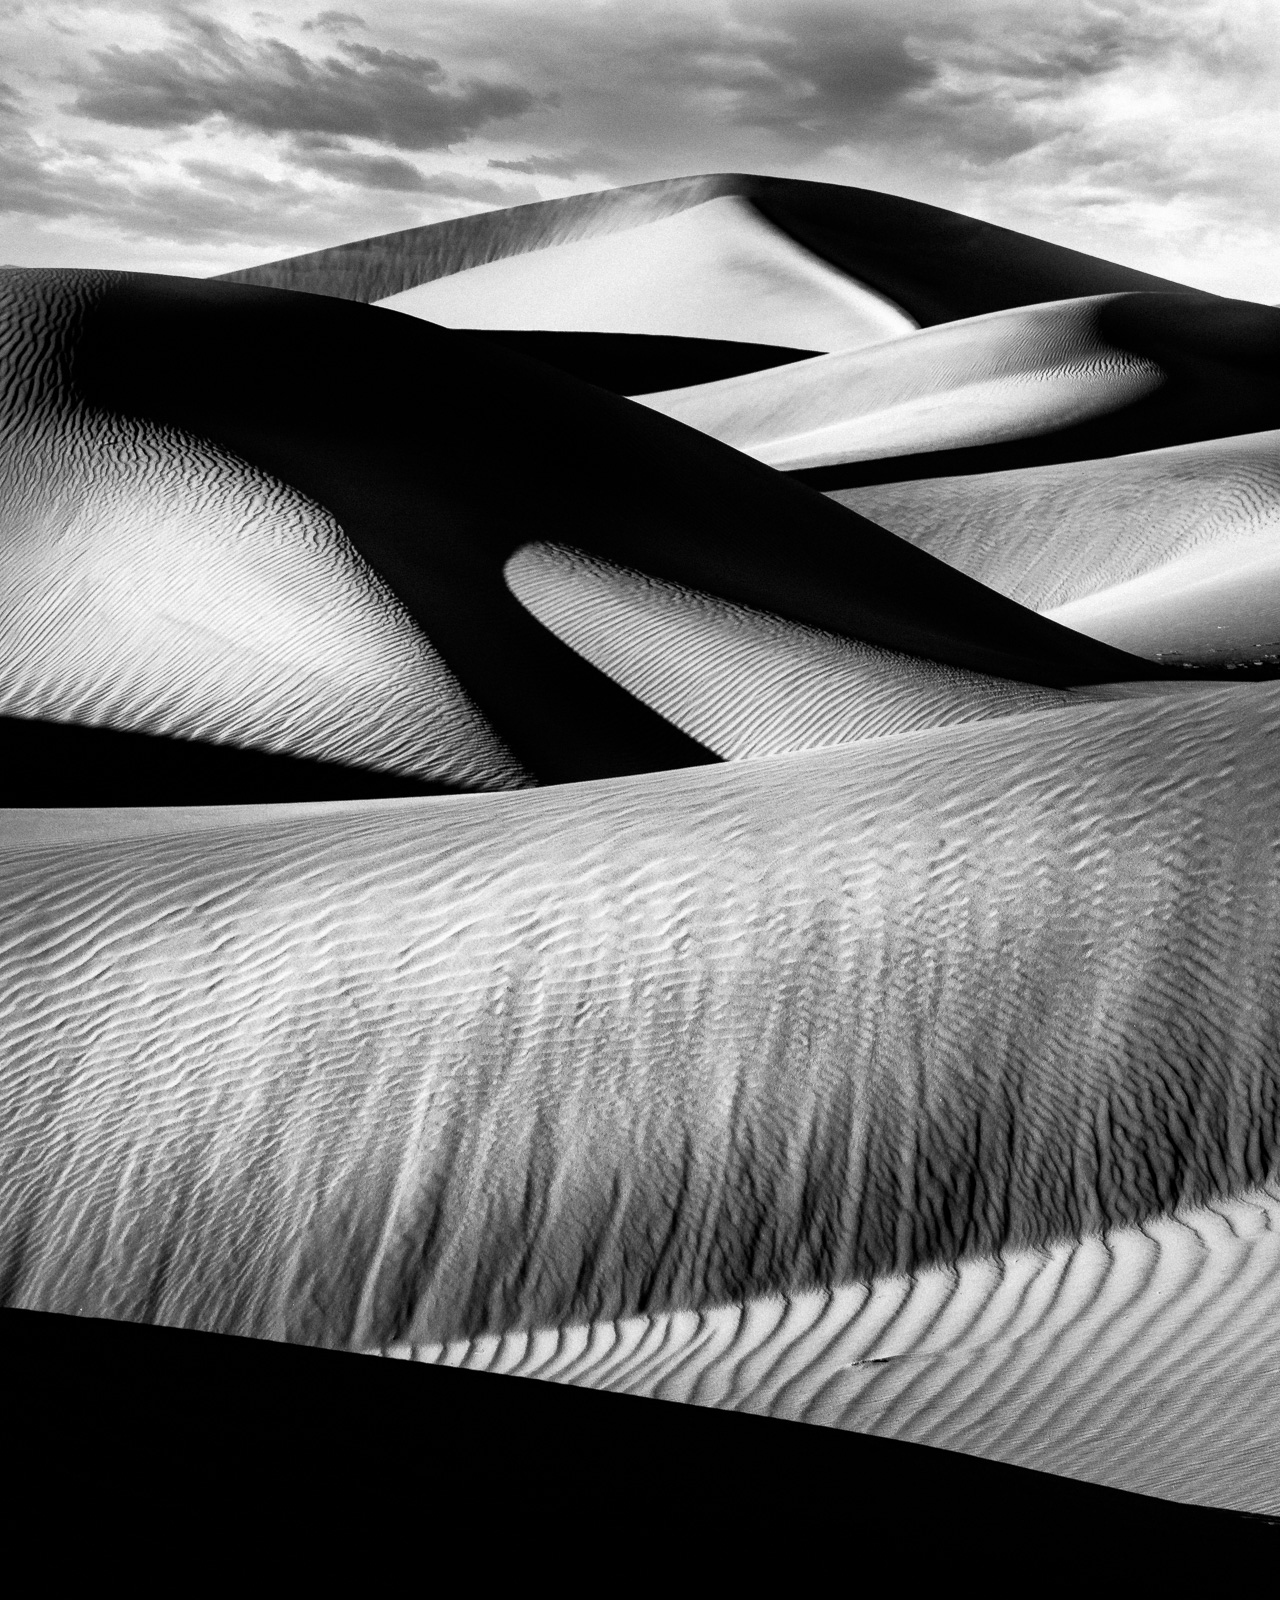 Mesquite Sand Dunes play of light in Death Valley, California.